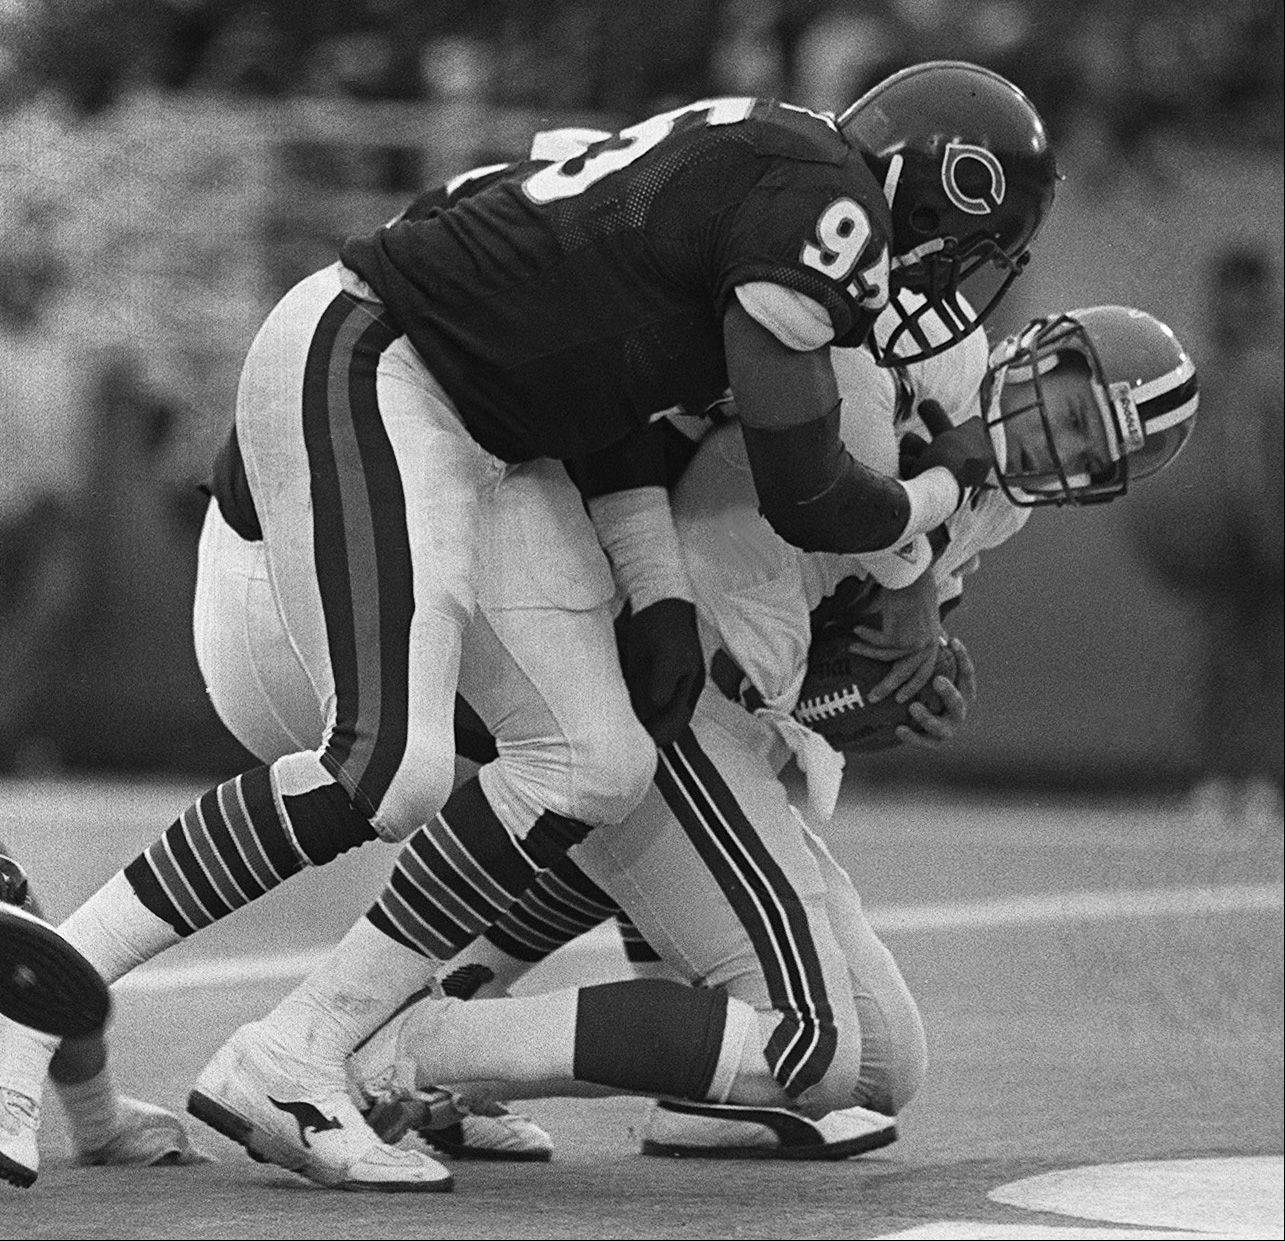 On the way to a Super Bowl championship and MVP award, Richard Dent punished opposing quarterbacks, including this sack against the Atlanta Falcons.